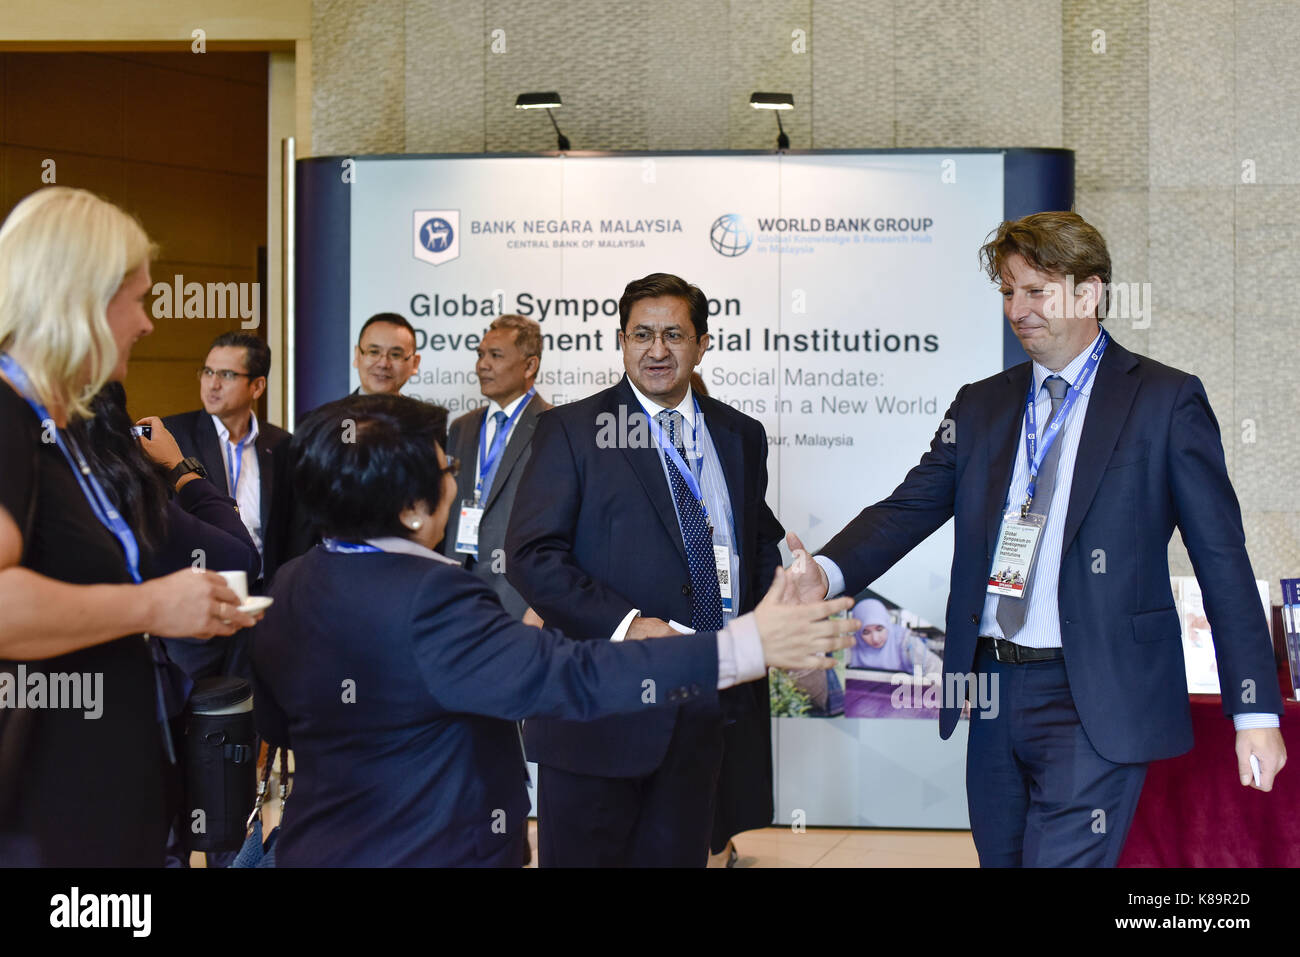 Kuala Lumpur, Malaysia. 19th Sep, 2017. Global Symposium on Development Financial Institutions participants are - Stock Image